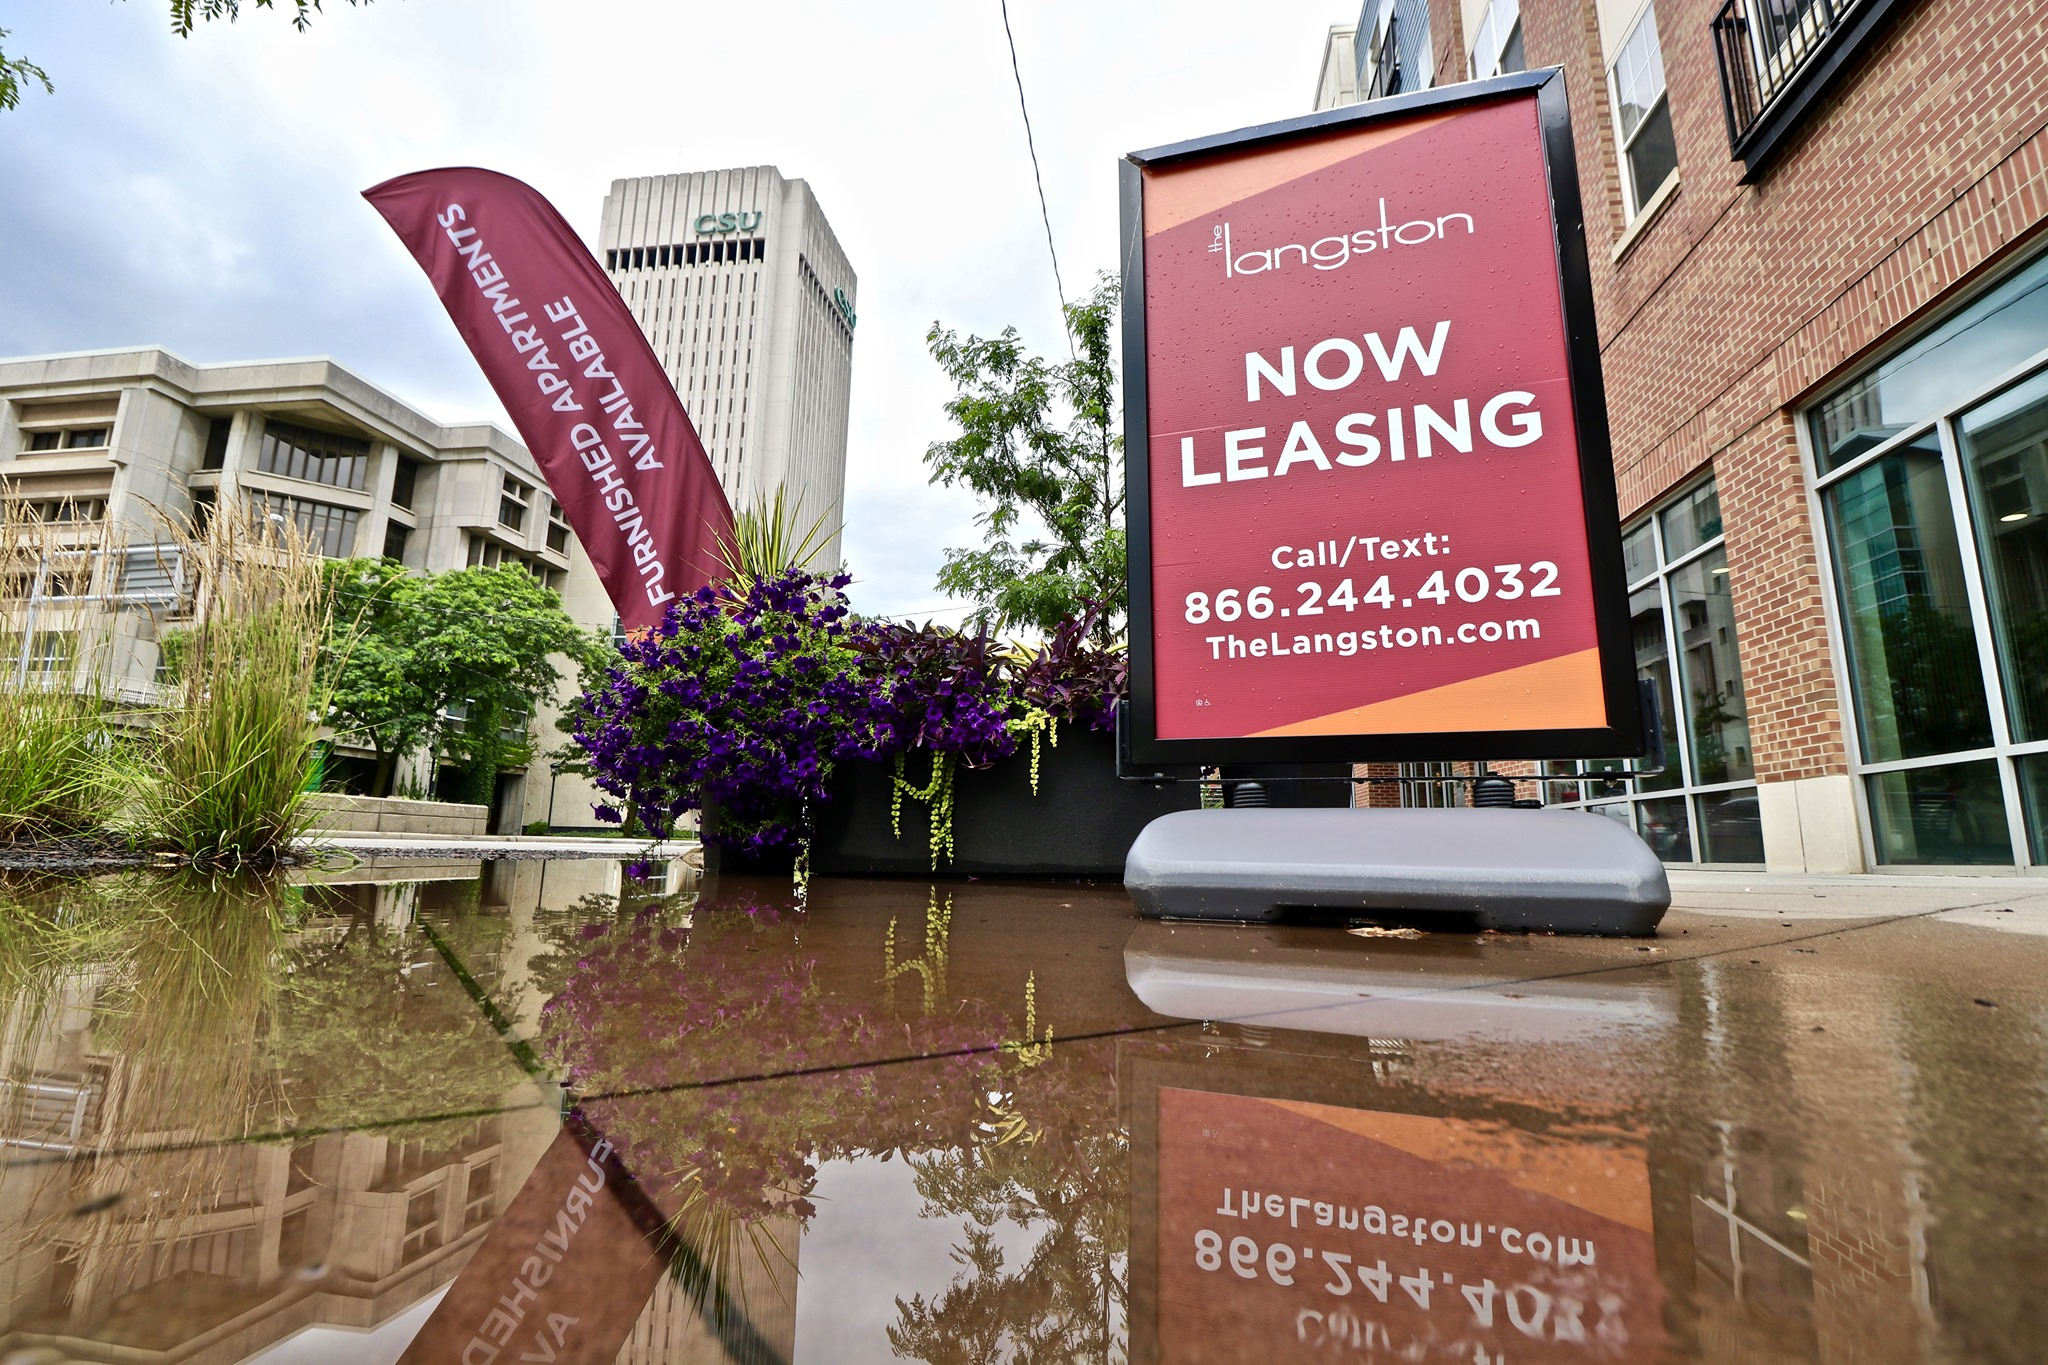 Leasing signage at The Langston Apartments, 2303 Chester Avenue, Cleveland